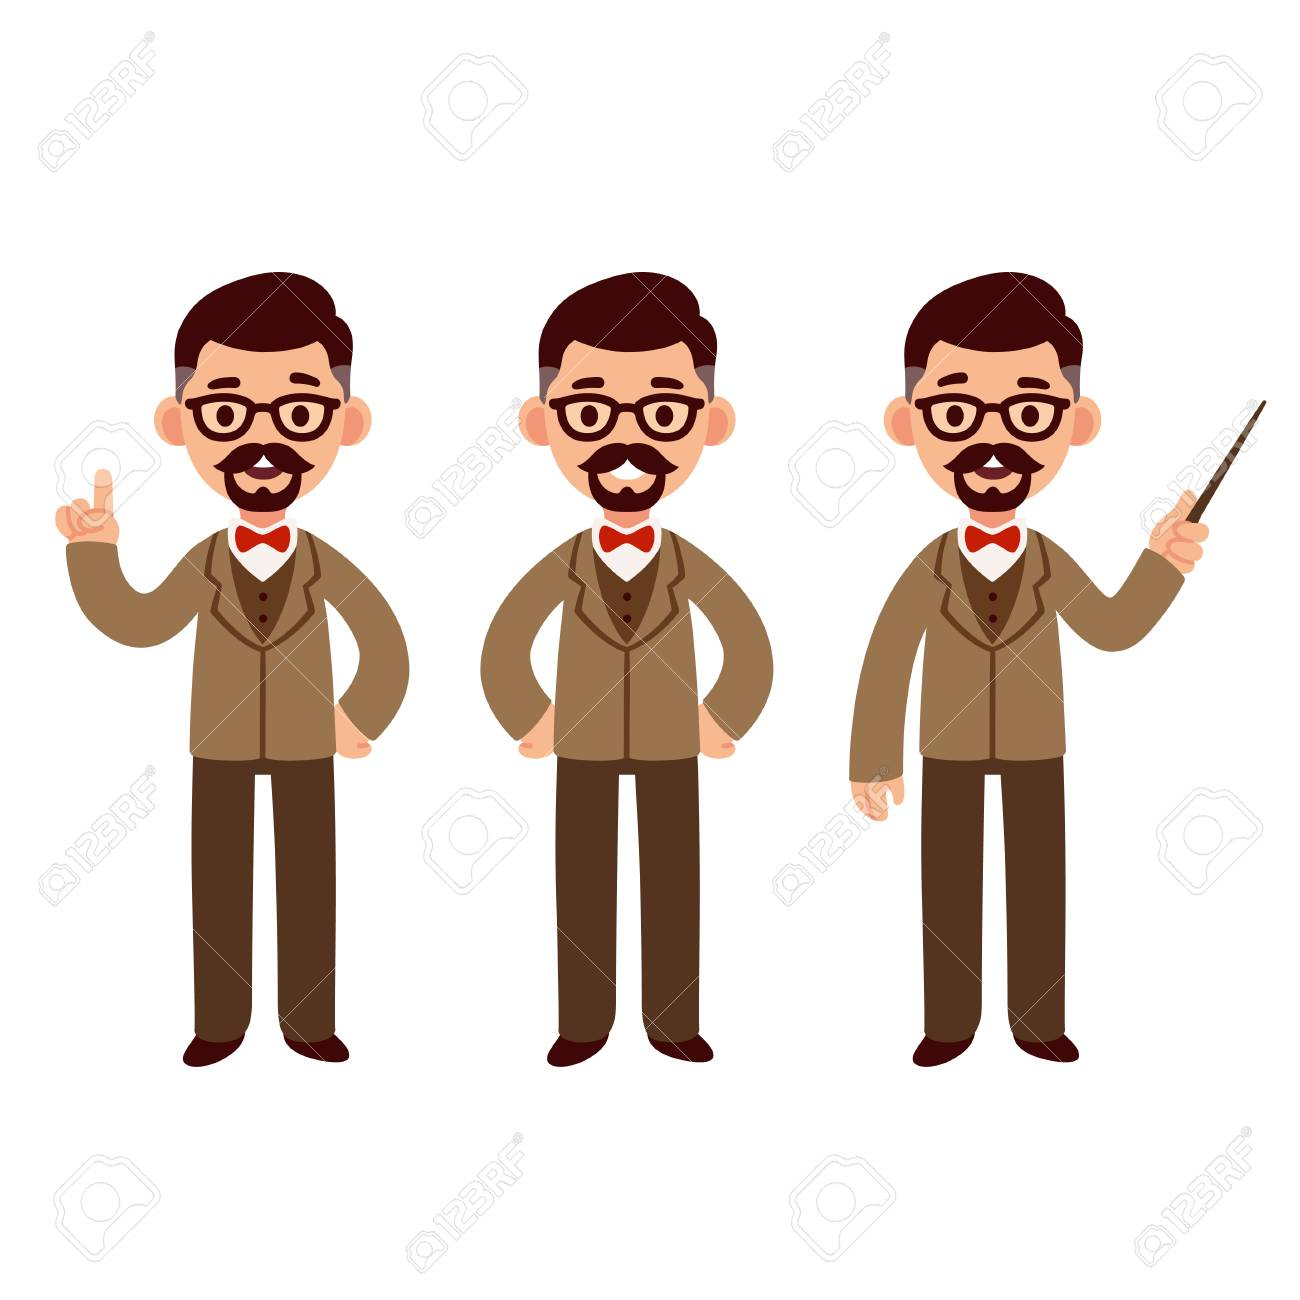 Middle aged professor character set with suit and bow tie. Standing, smiling and pointing. Cute cartoon vector illustration. - 87049677